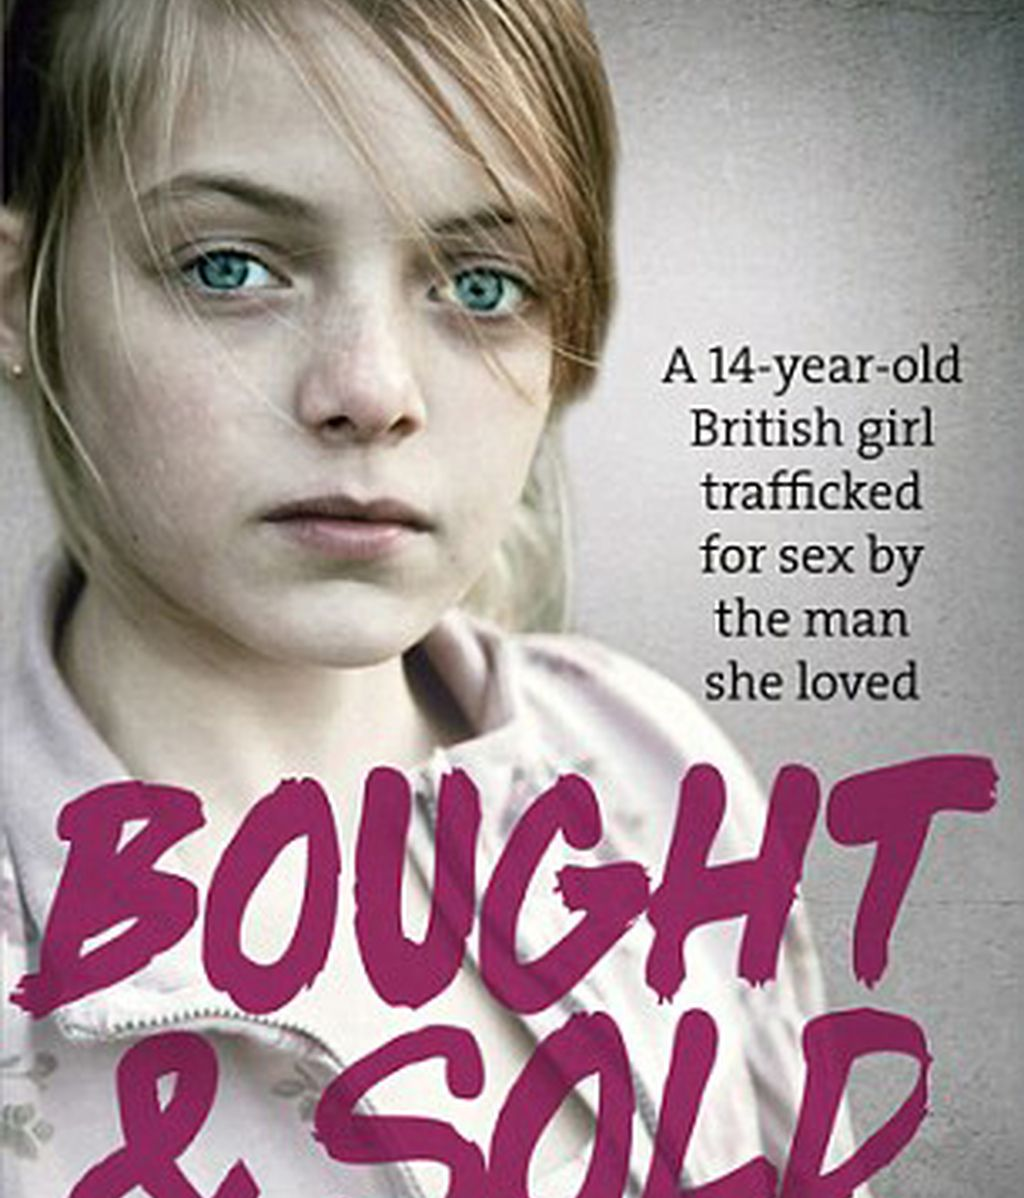 Portada del libro, 'Bought & Sold'